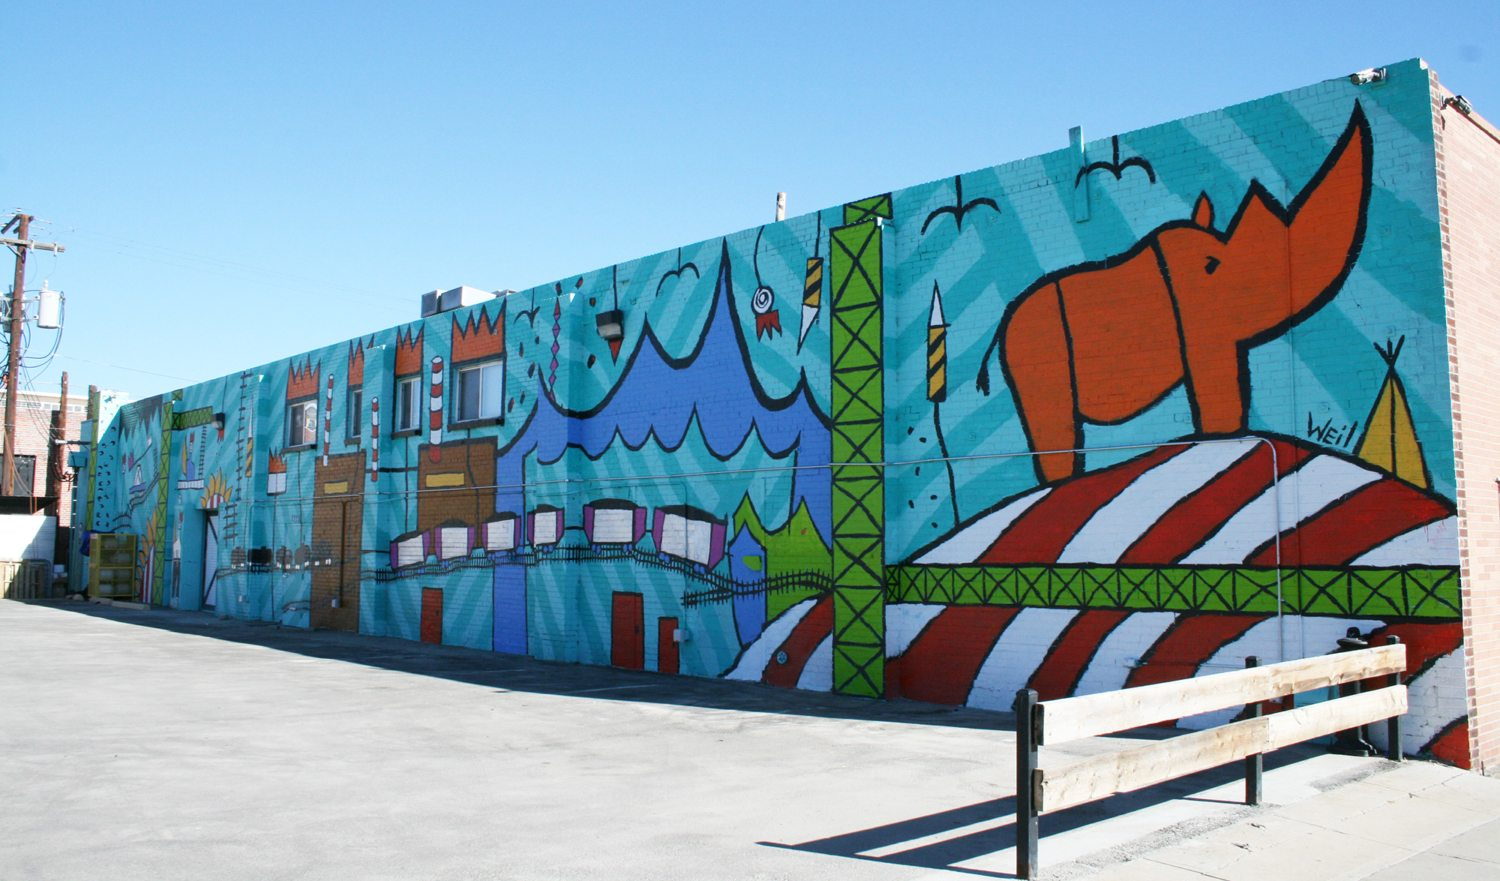 Magnificent Mural Event Slated for September